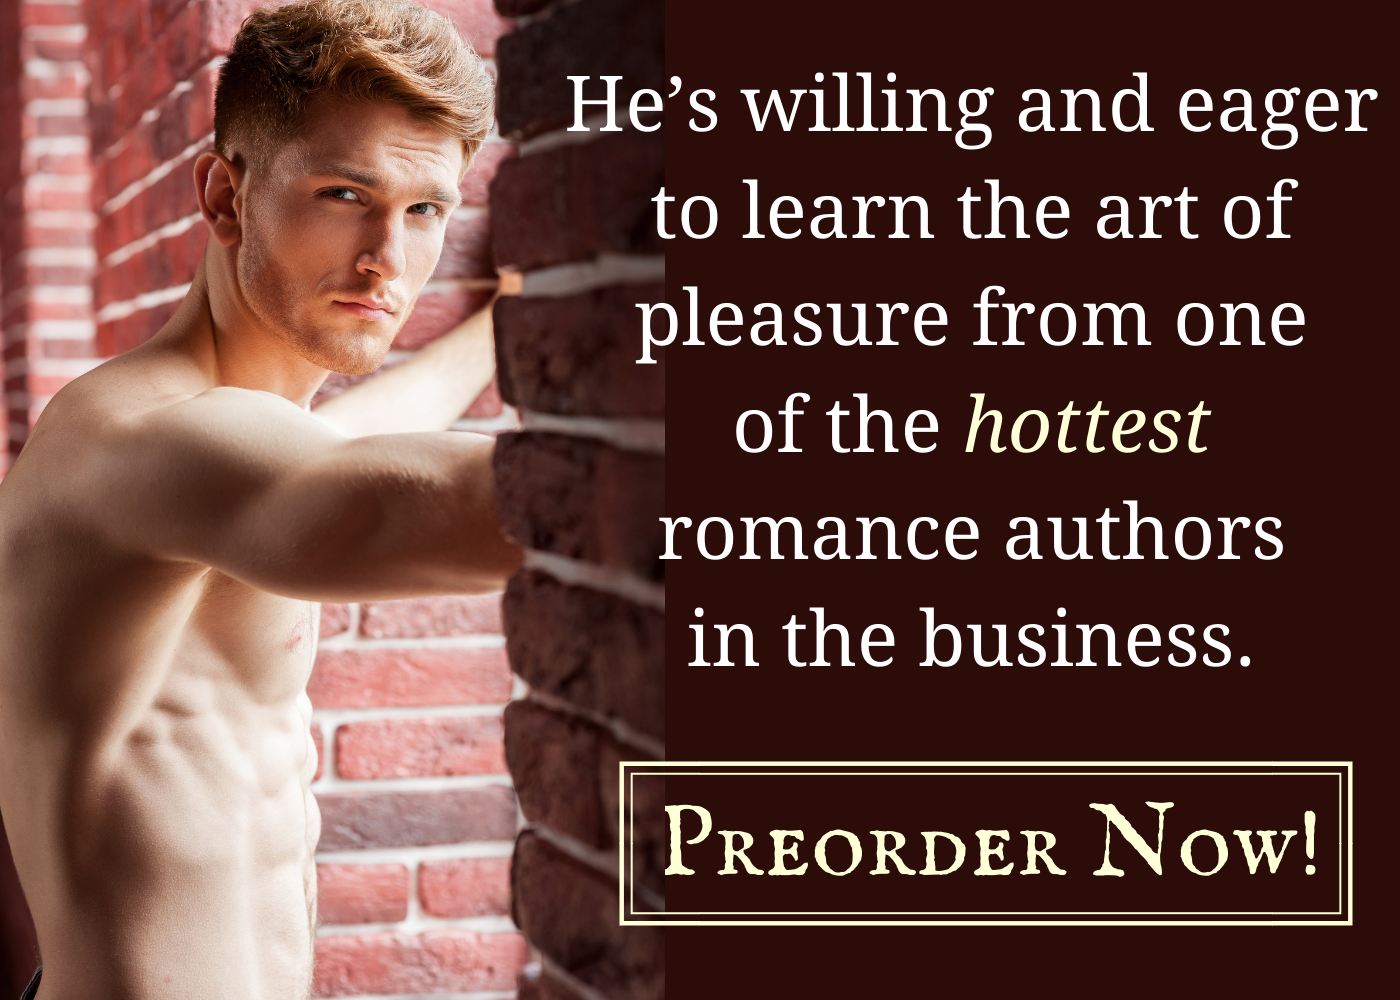 Shirtless white man braced on red brick wall. Text: He's willing and eager to learn the art of pleasure from one of the hottest romance authors in the business. Preorder now!